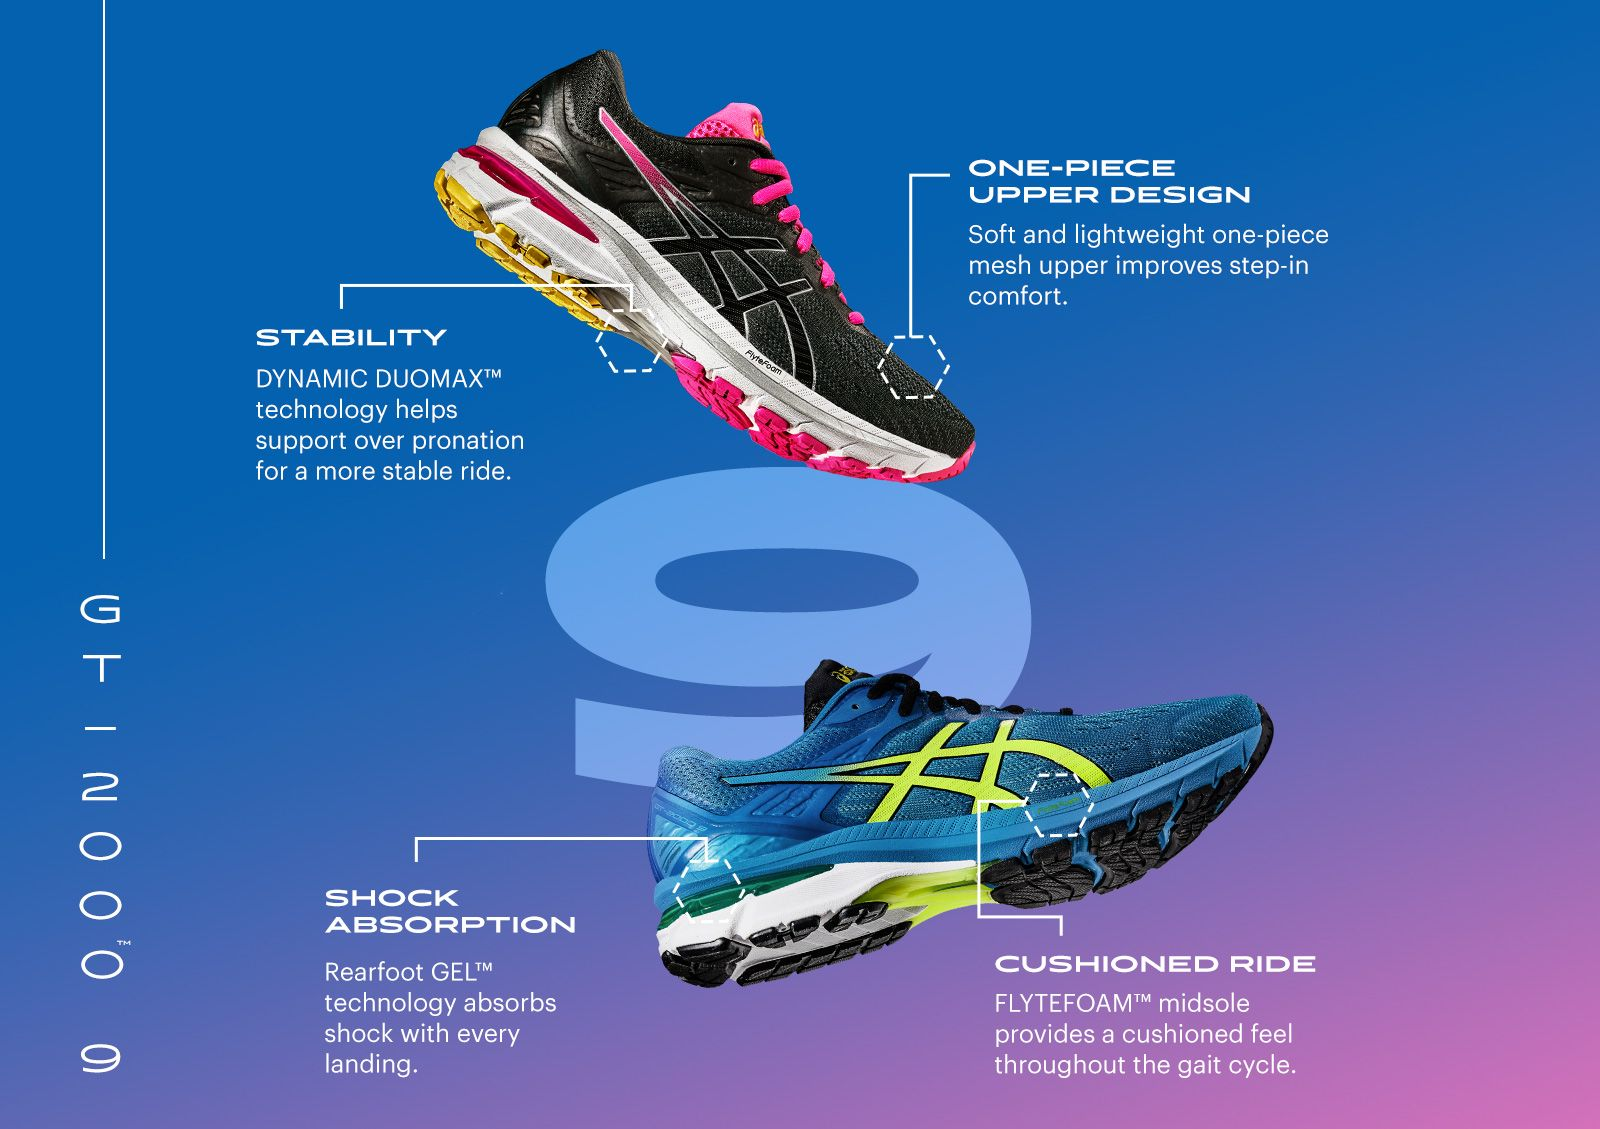 asics-gt-2000-9-lp-tech-1600x1129